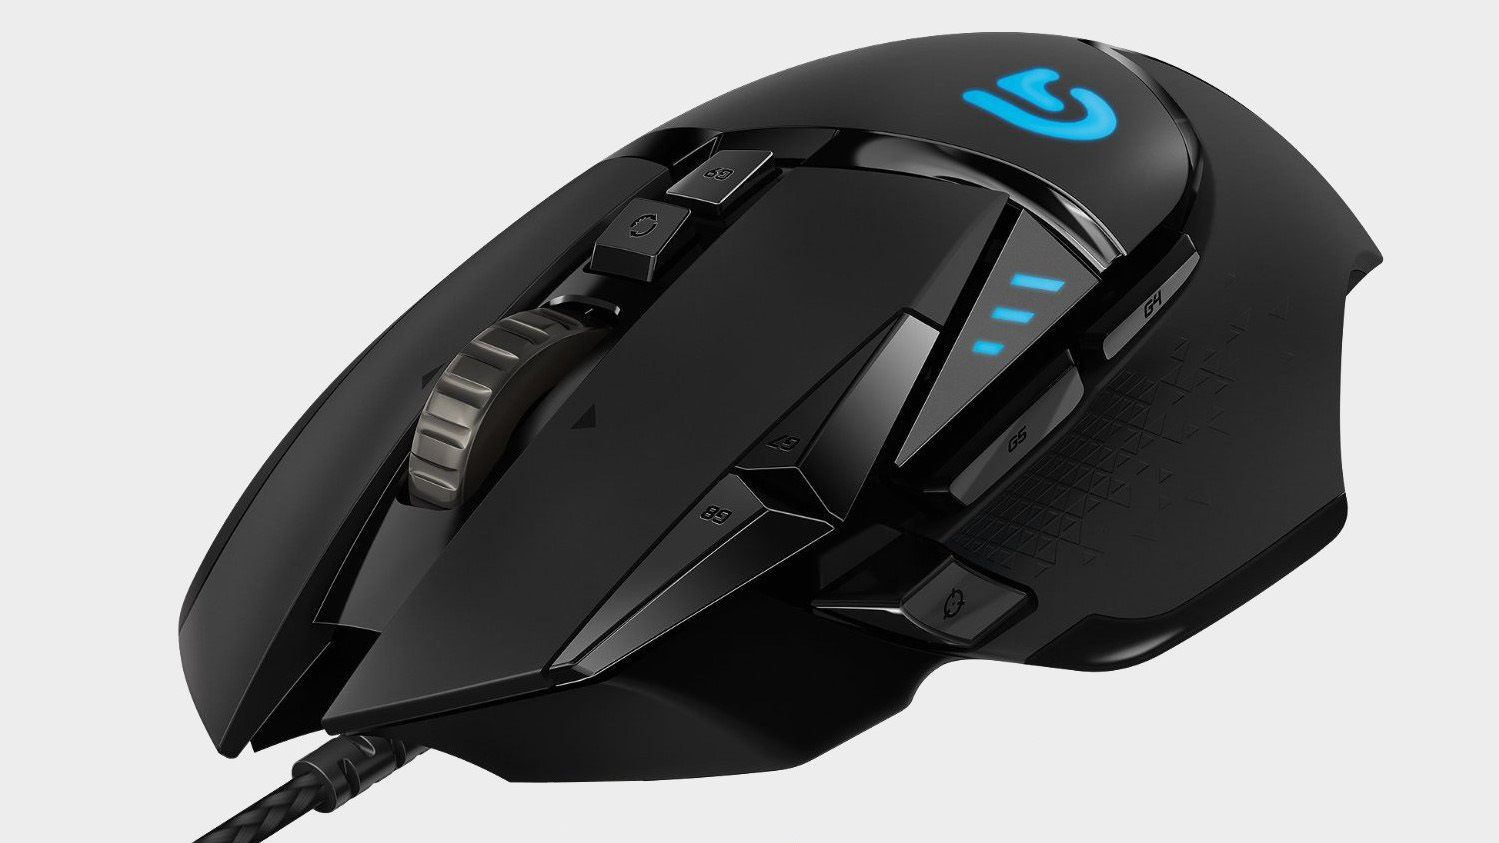 Logitech's G502 gaming mouse is just $35 today (Update: Sold